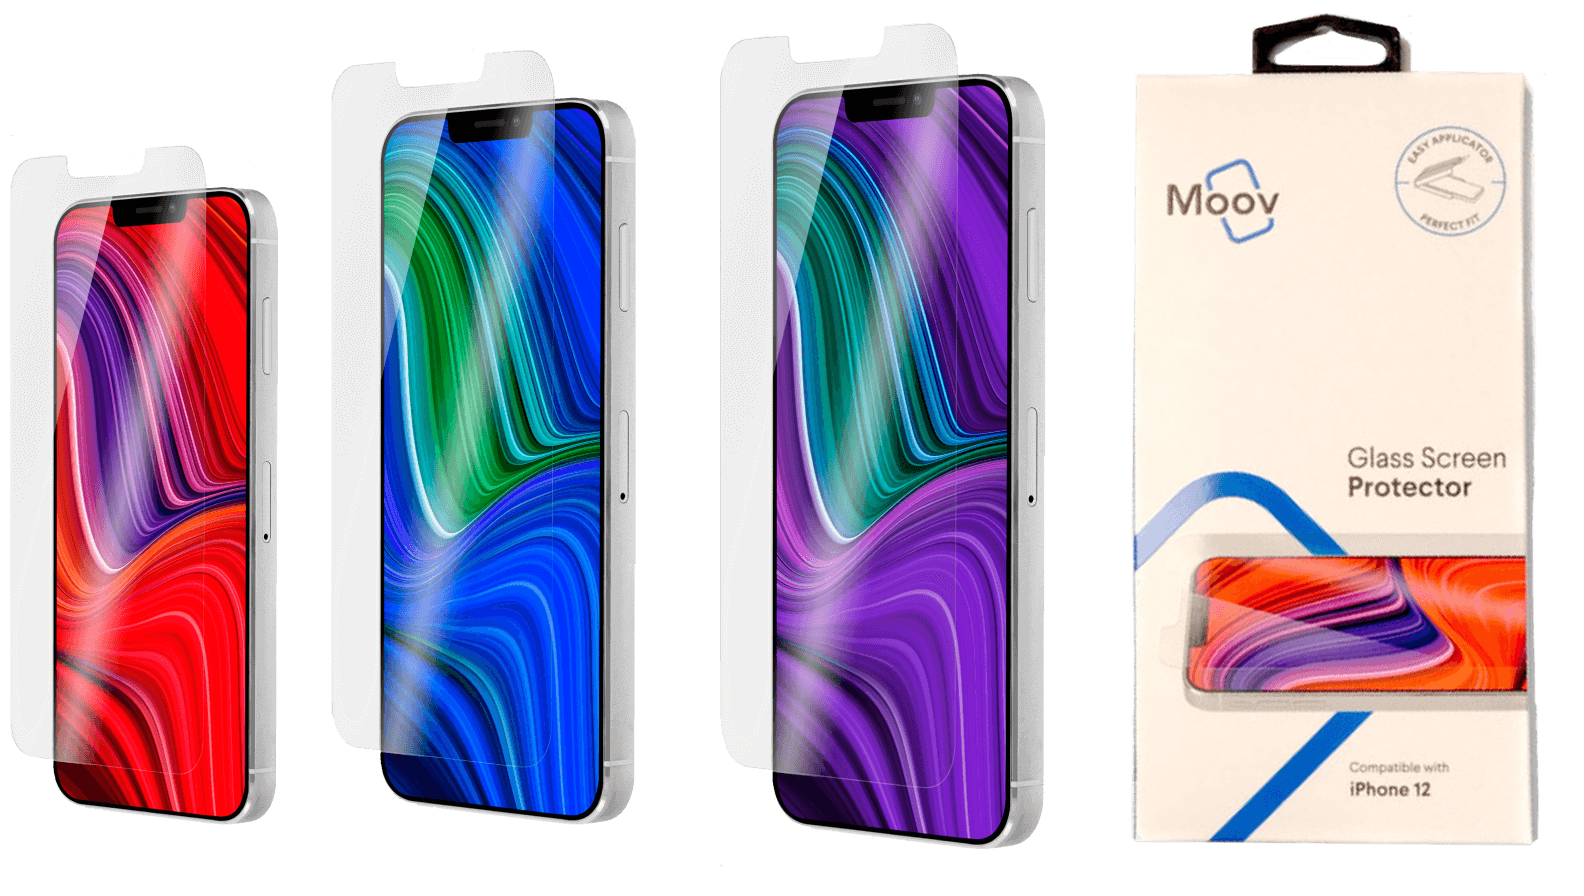 Moov Glass Screen Protector for iPhone